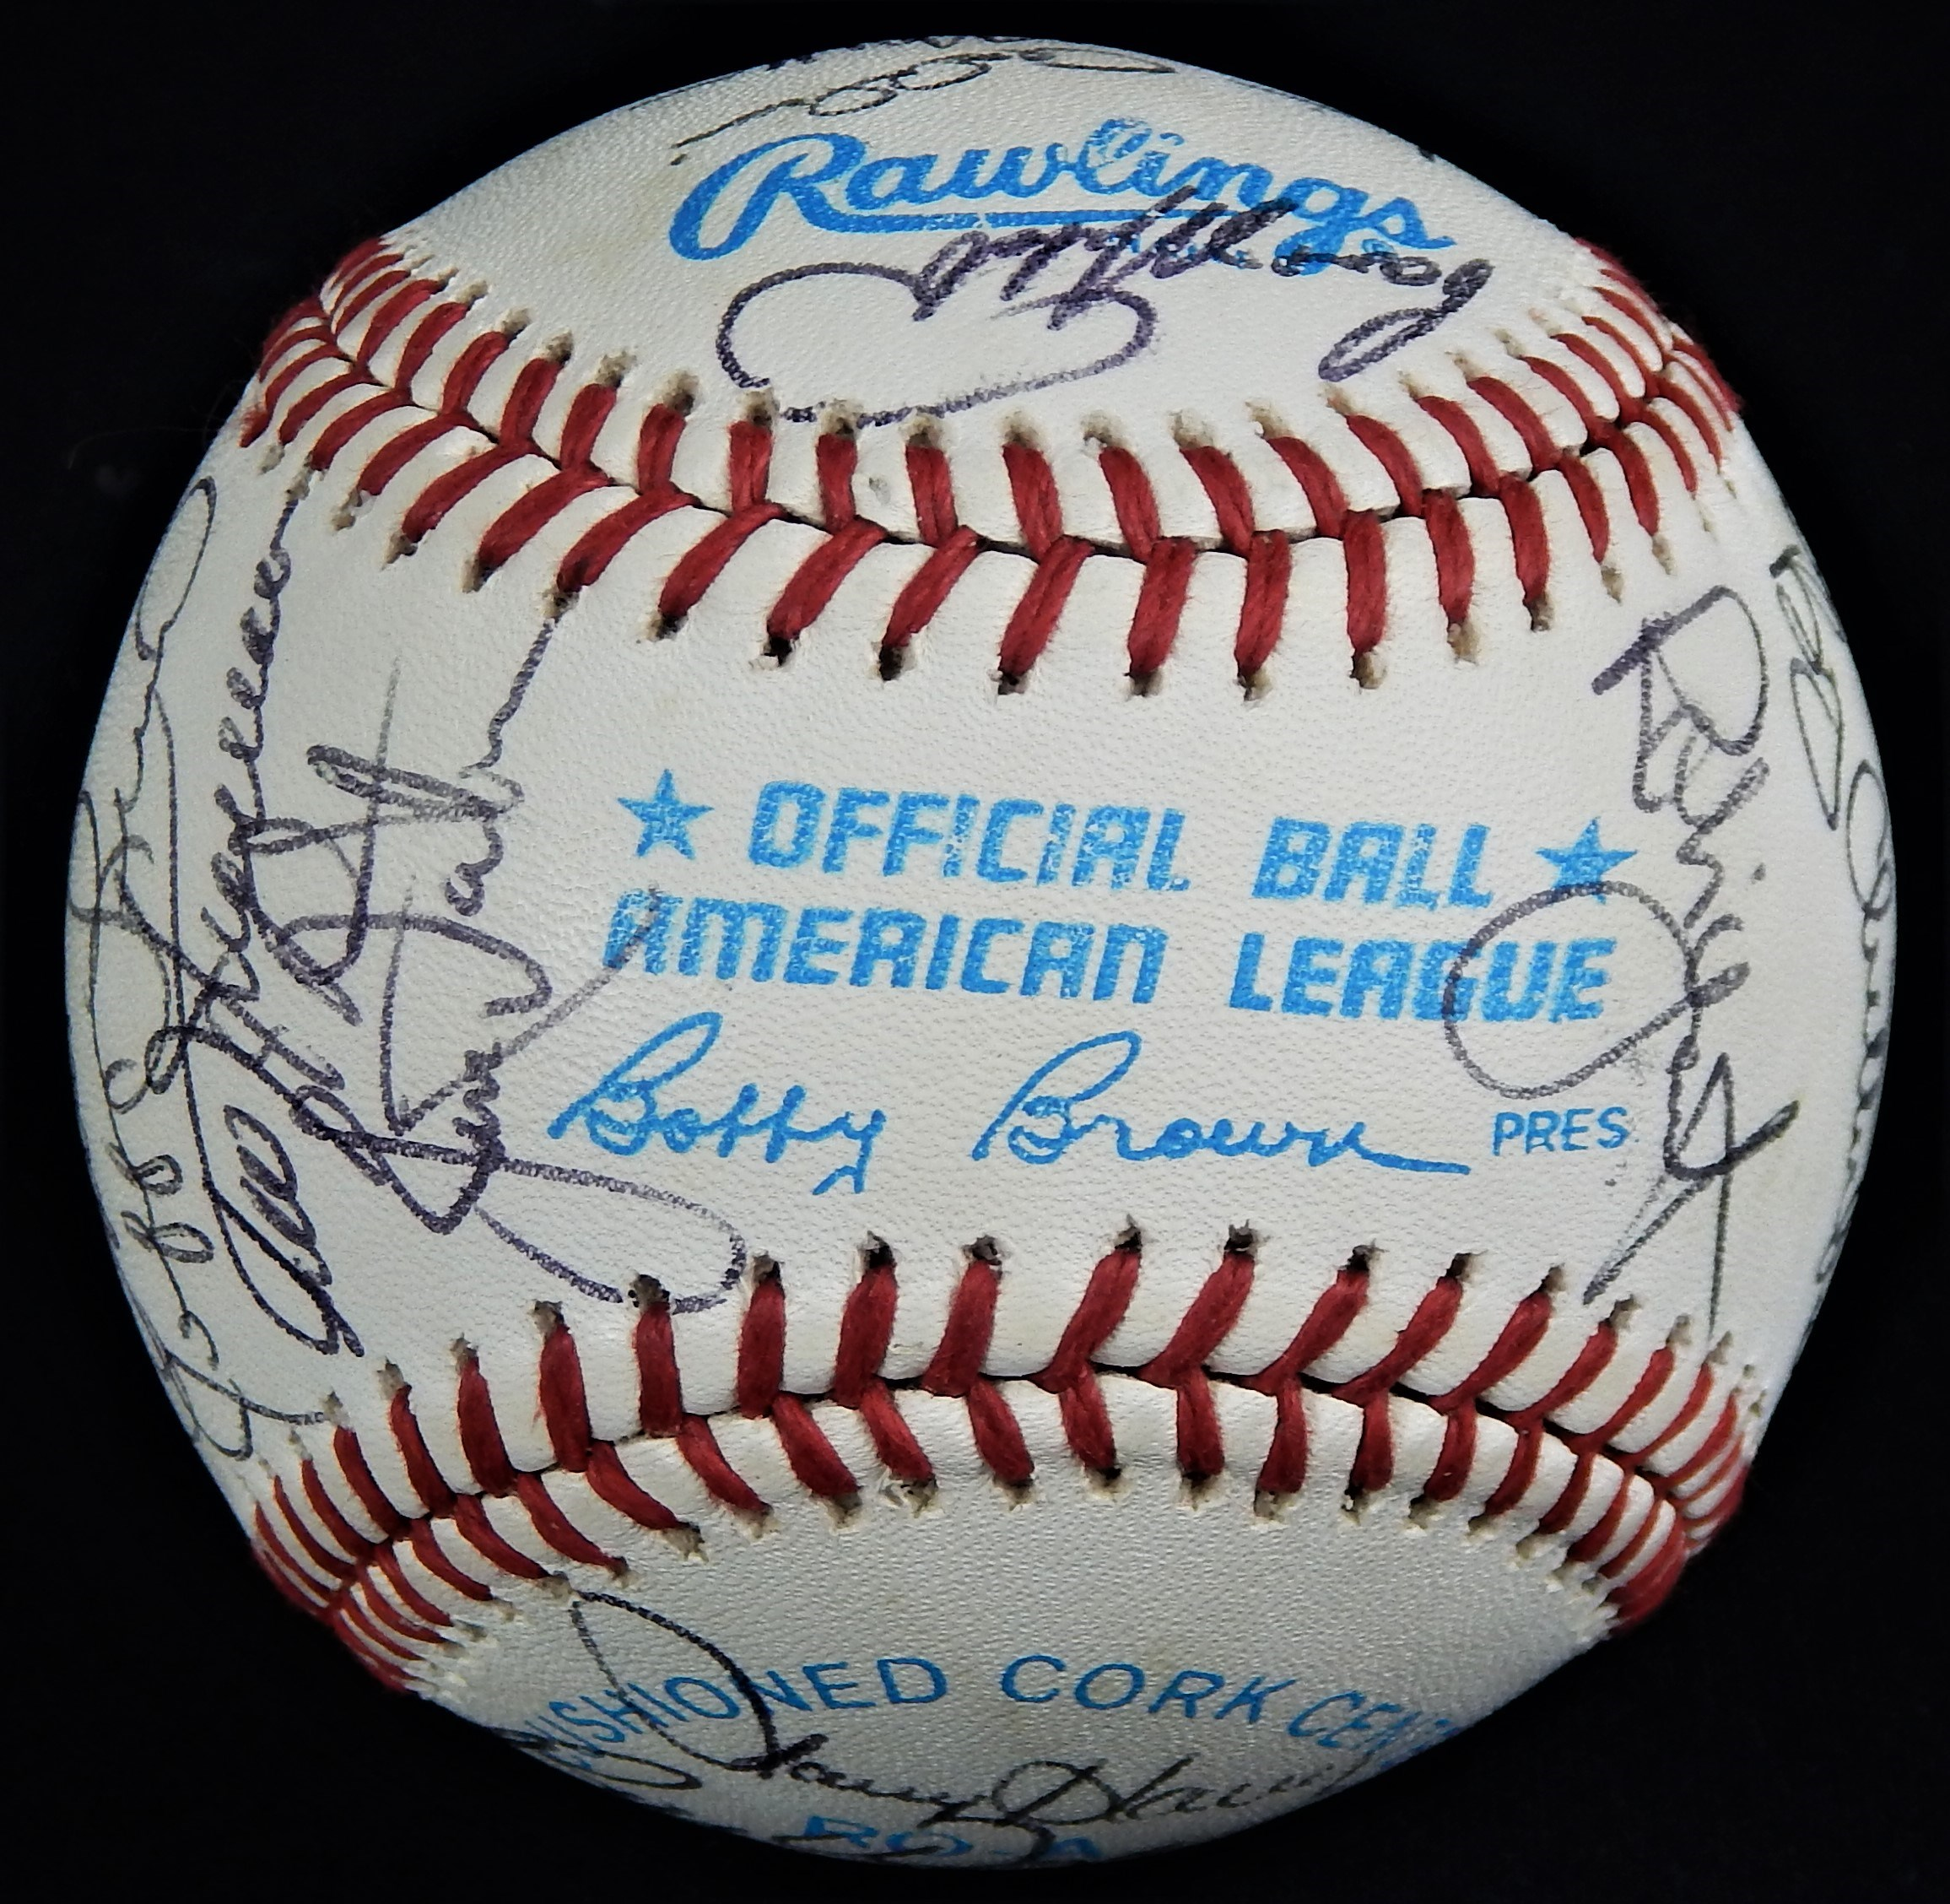 1988 Milwaukee Brewers Team Signed Baseball with Hall of Famers